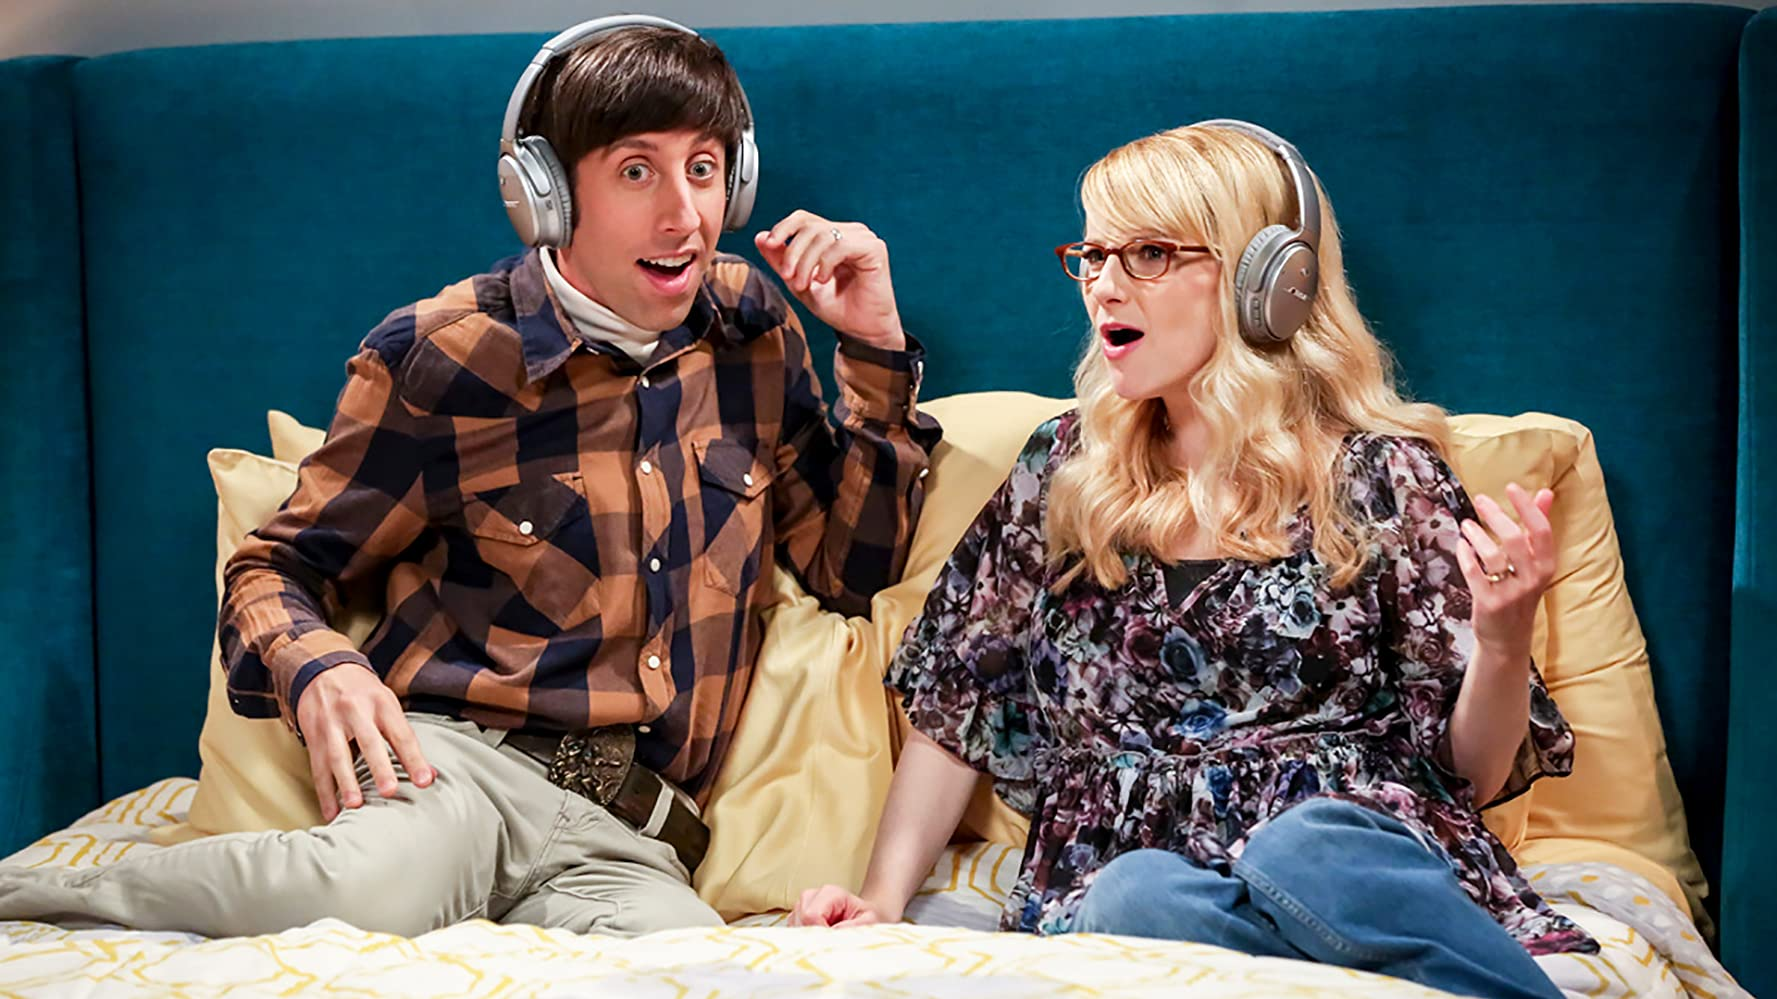 Simon Helberg and Melissa Rauch in The Big Bang Theory (2007)